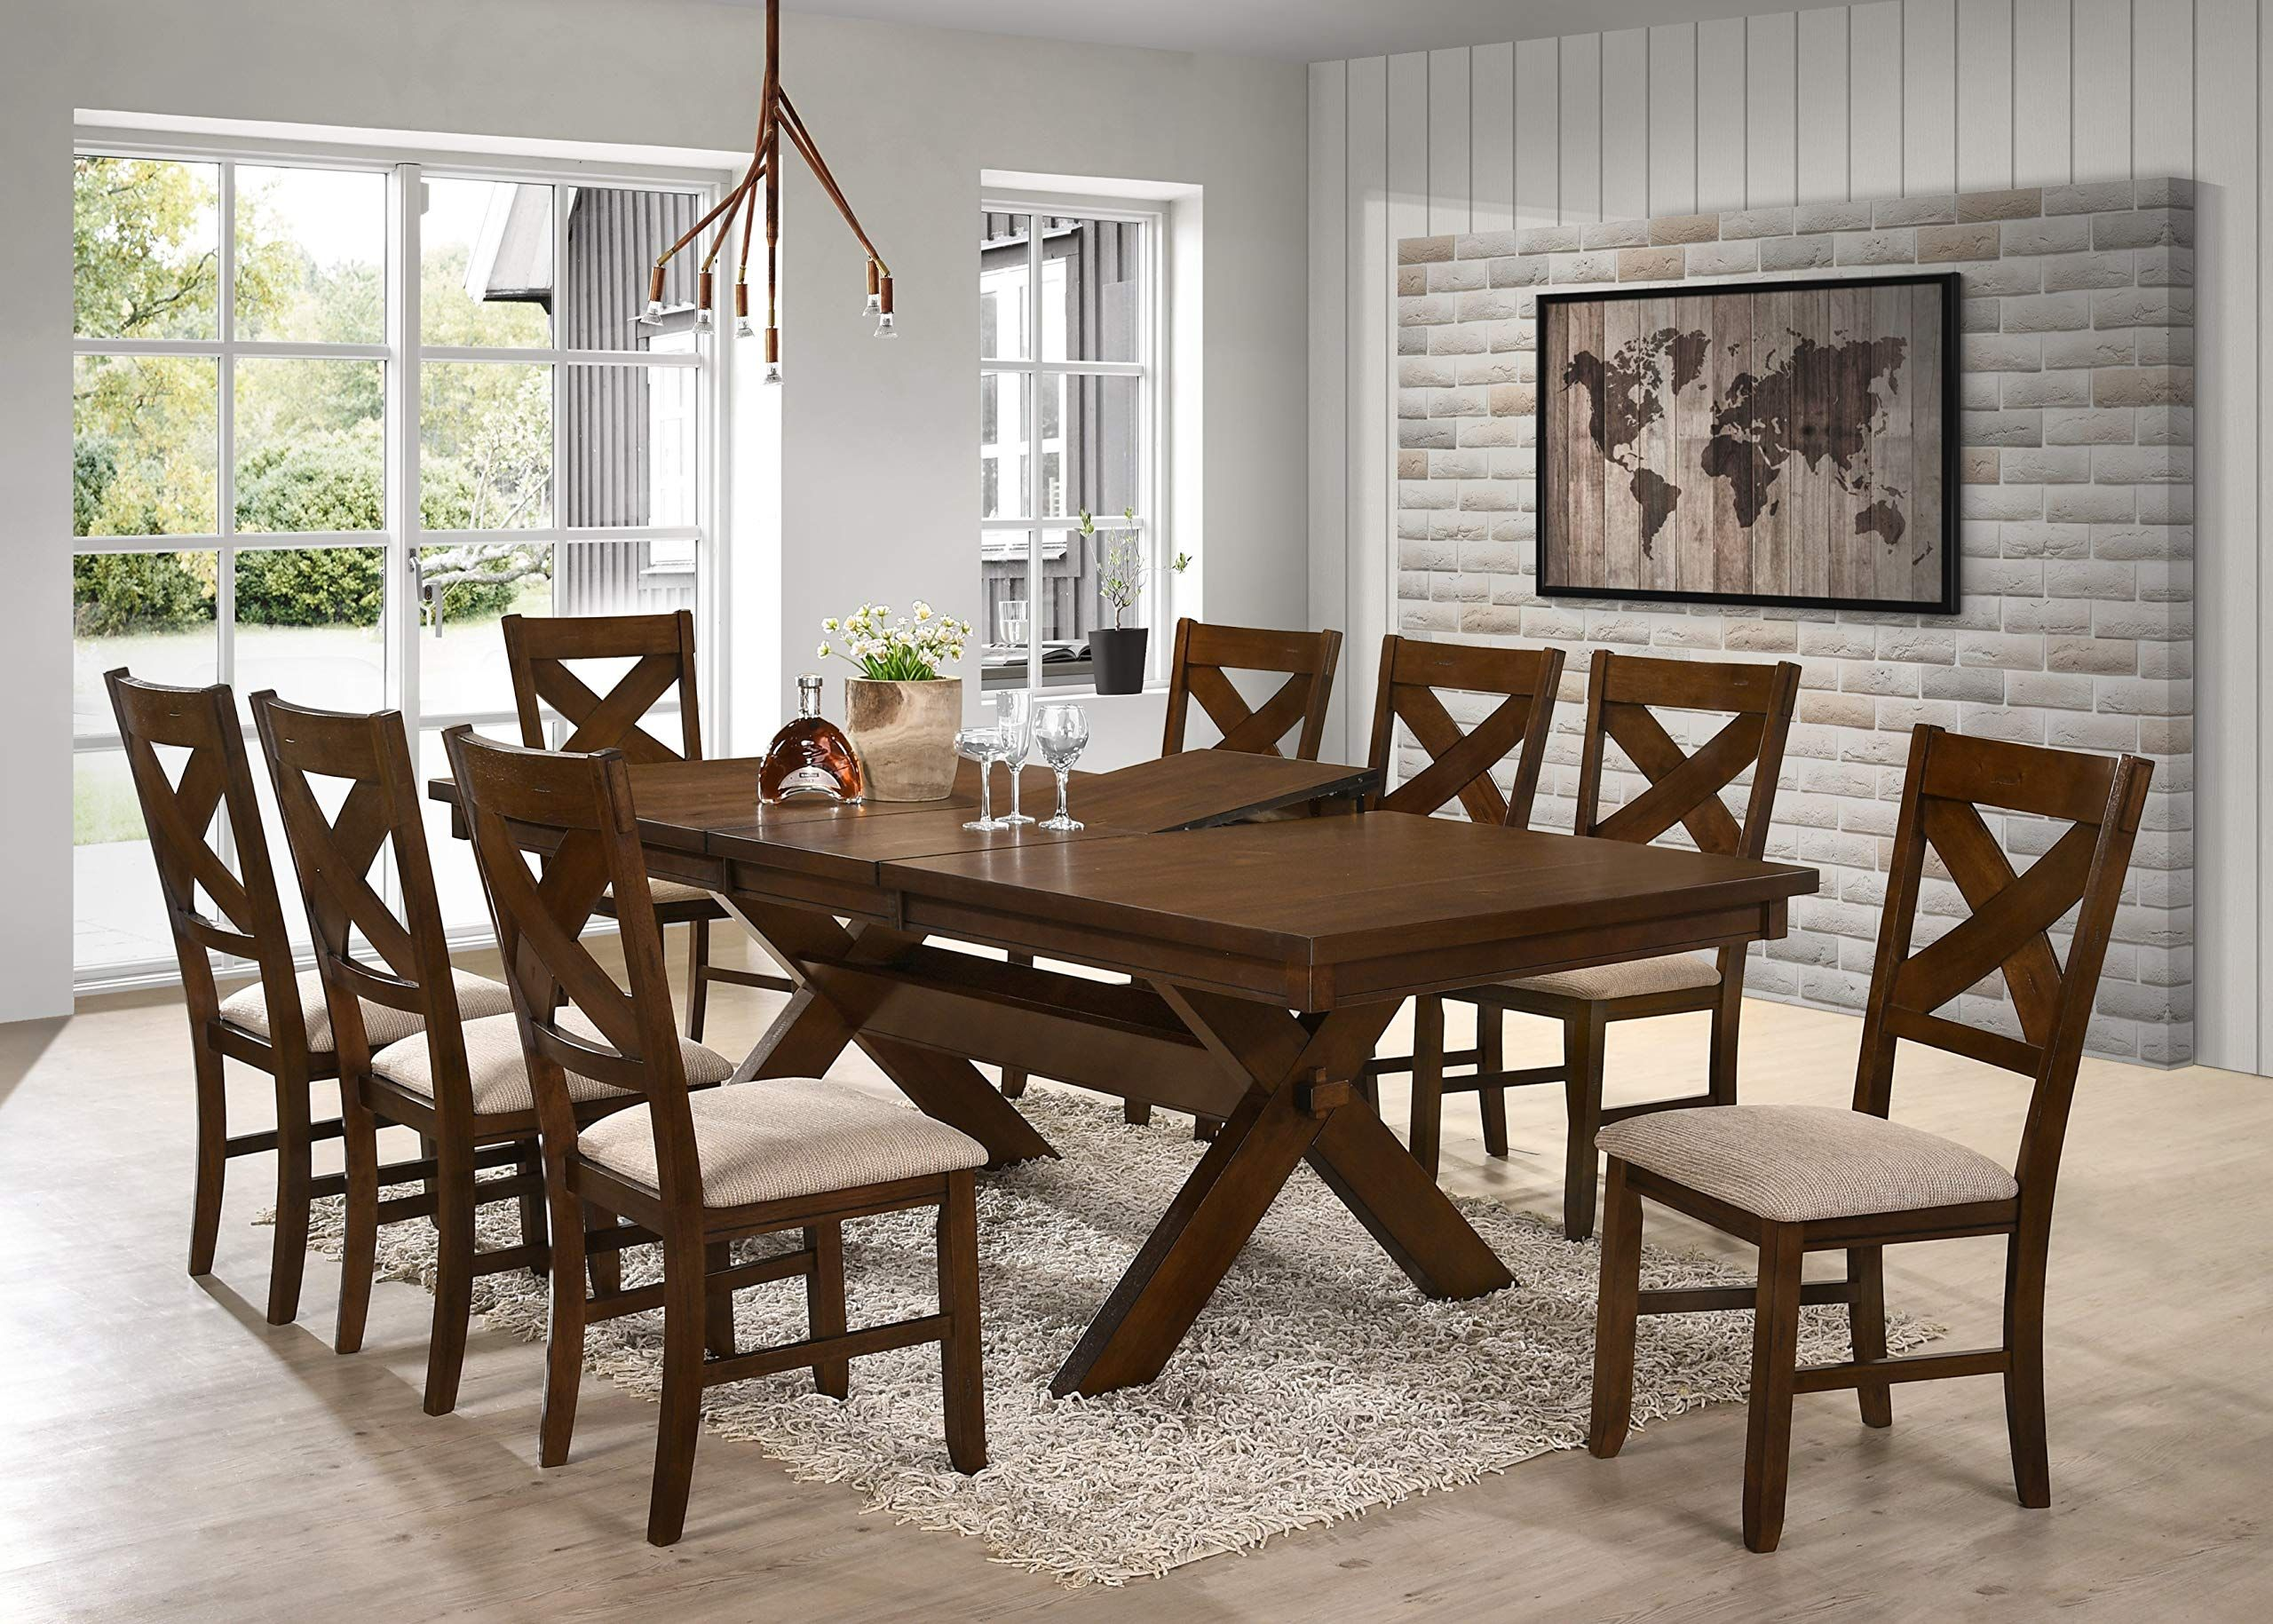 Roundhill Furniture Karven 9 Piece Solid Wood Dining Set With Table And 8 Chairs To Solid Wood Dining Set Dining Room Table Set Farmhouse Dining Room Table